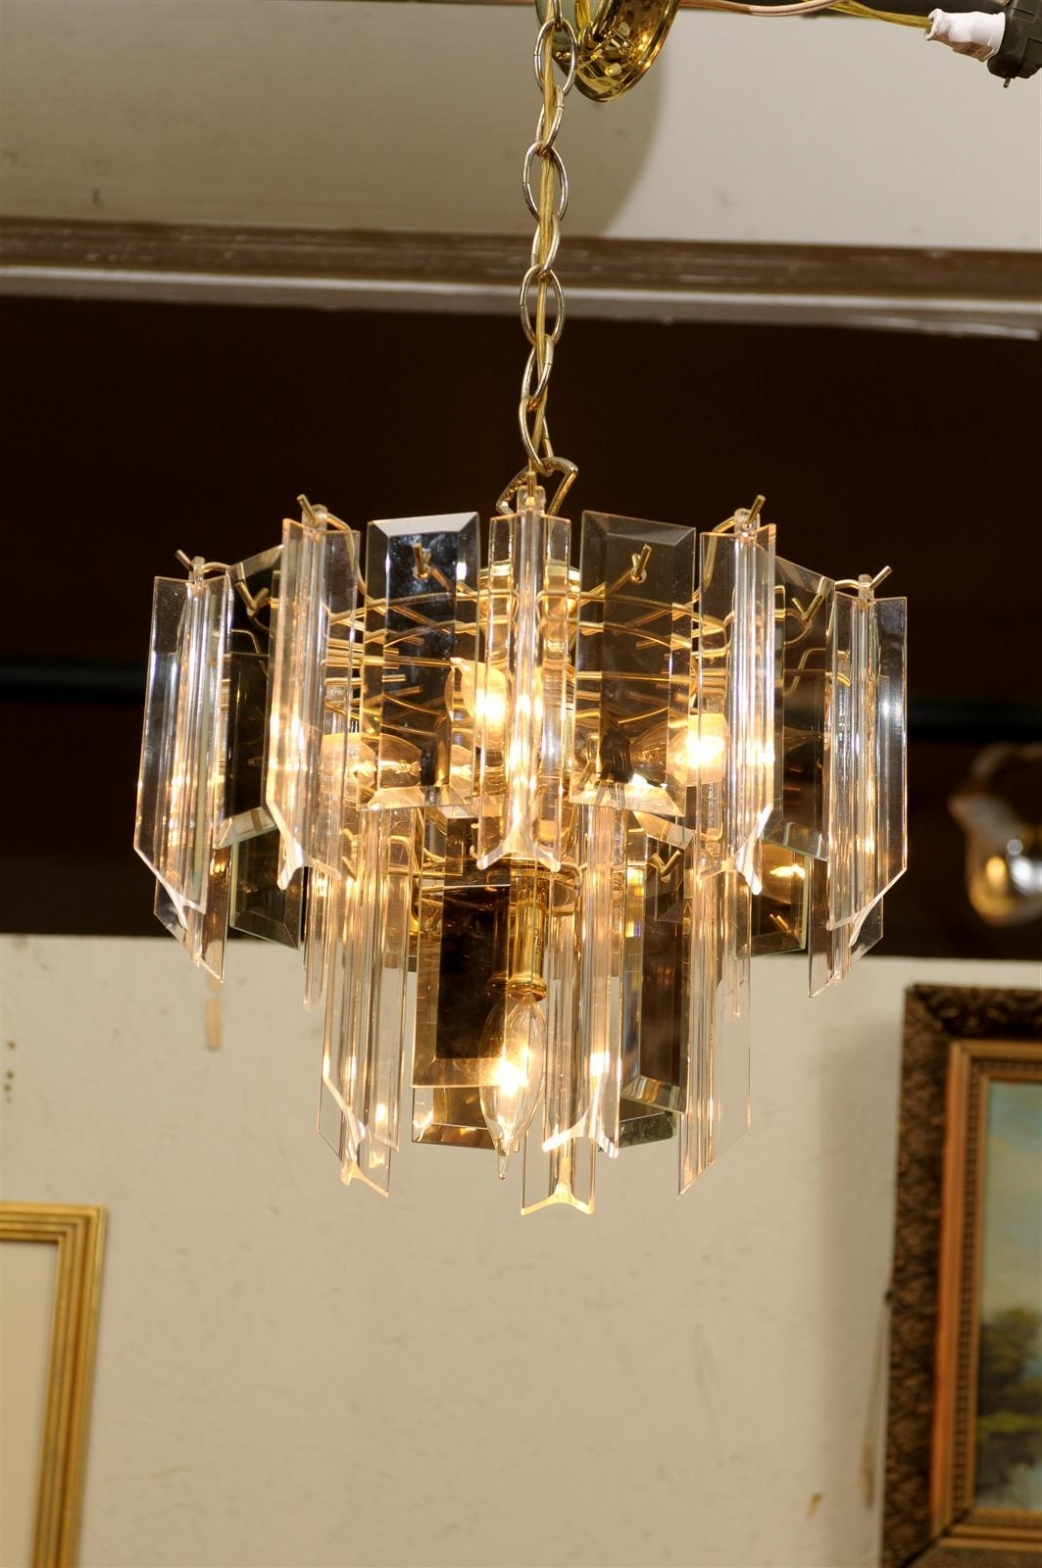 Widely Used Brass Beveled Glass Chandelier – Chandelier Designs With Regard To Smoked Glass Chandelier (View 6 of 15)